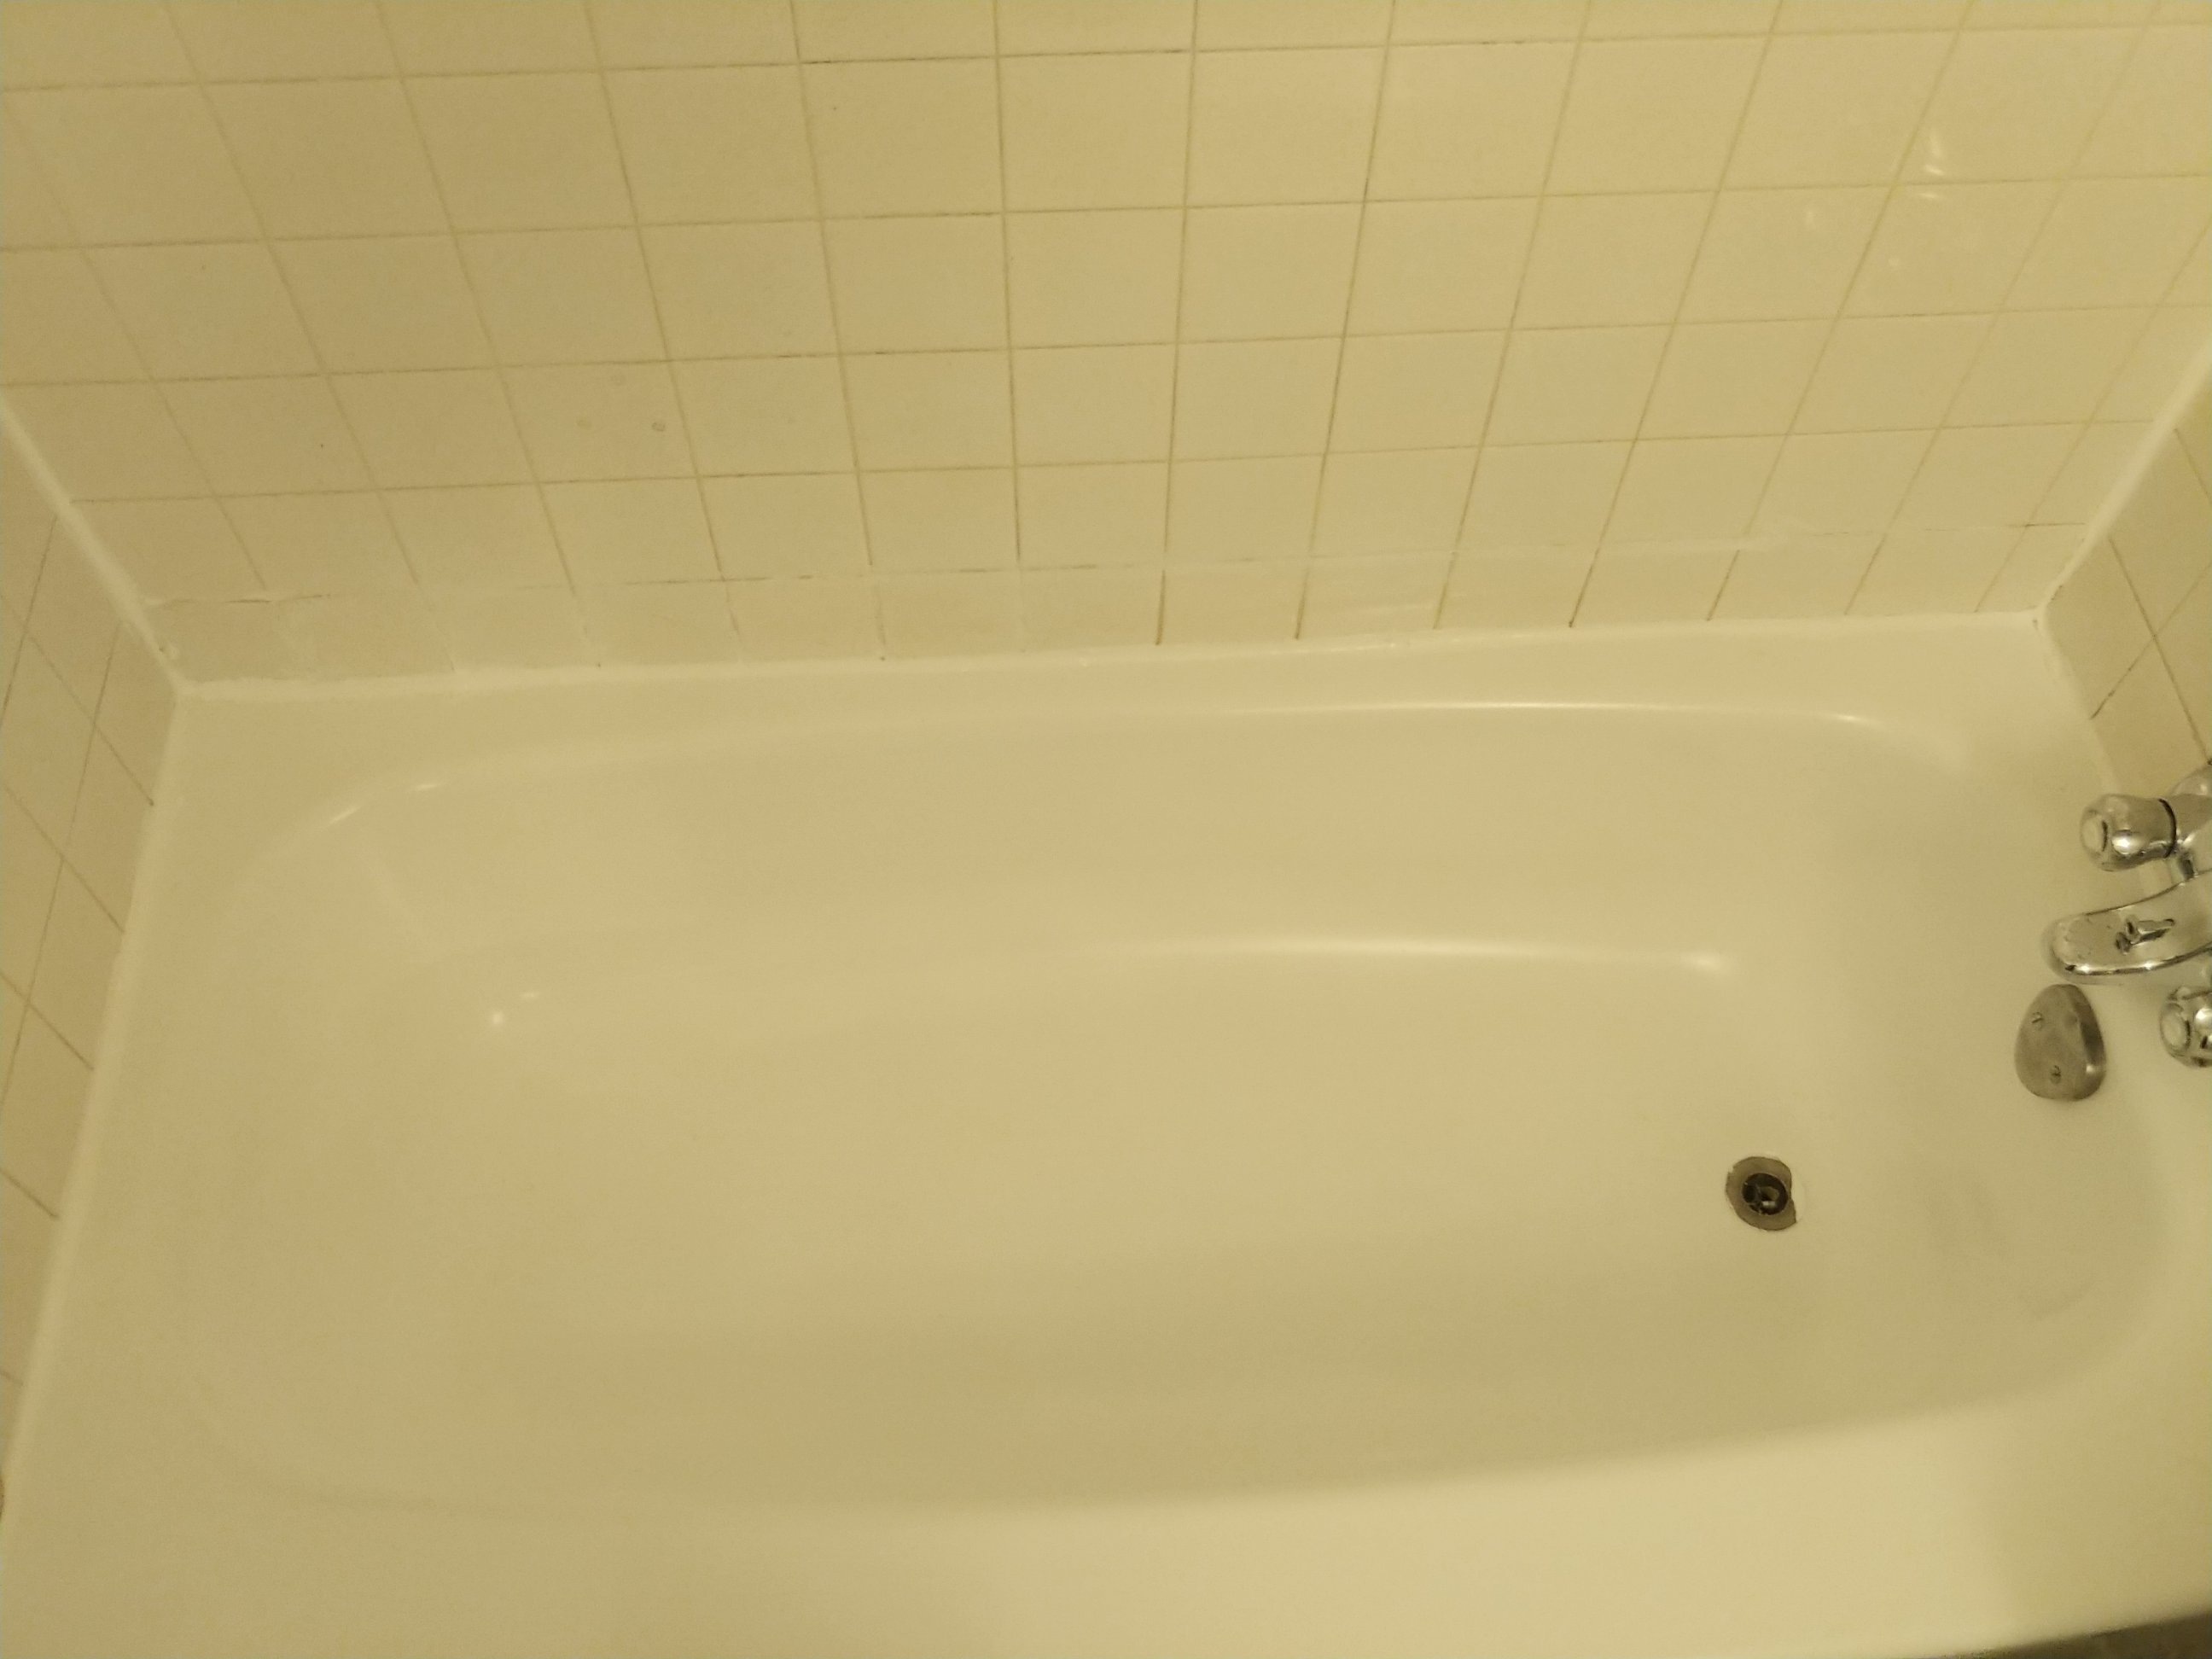 bathtub after cleaning